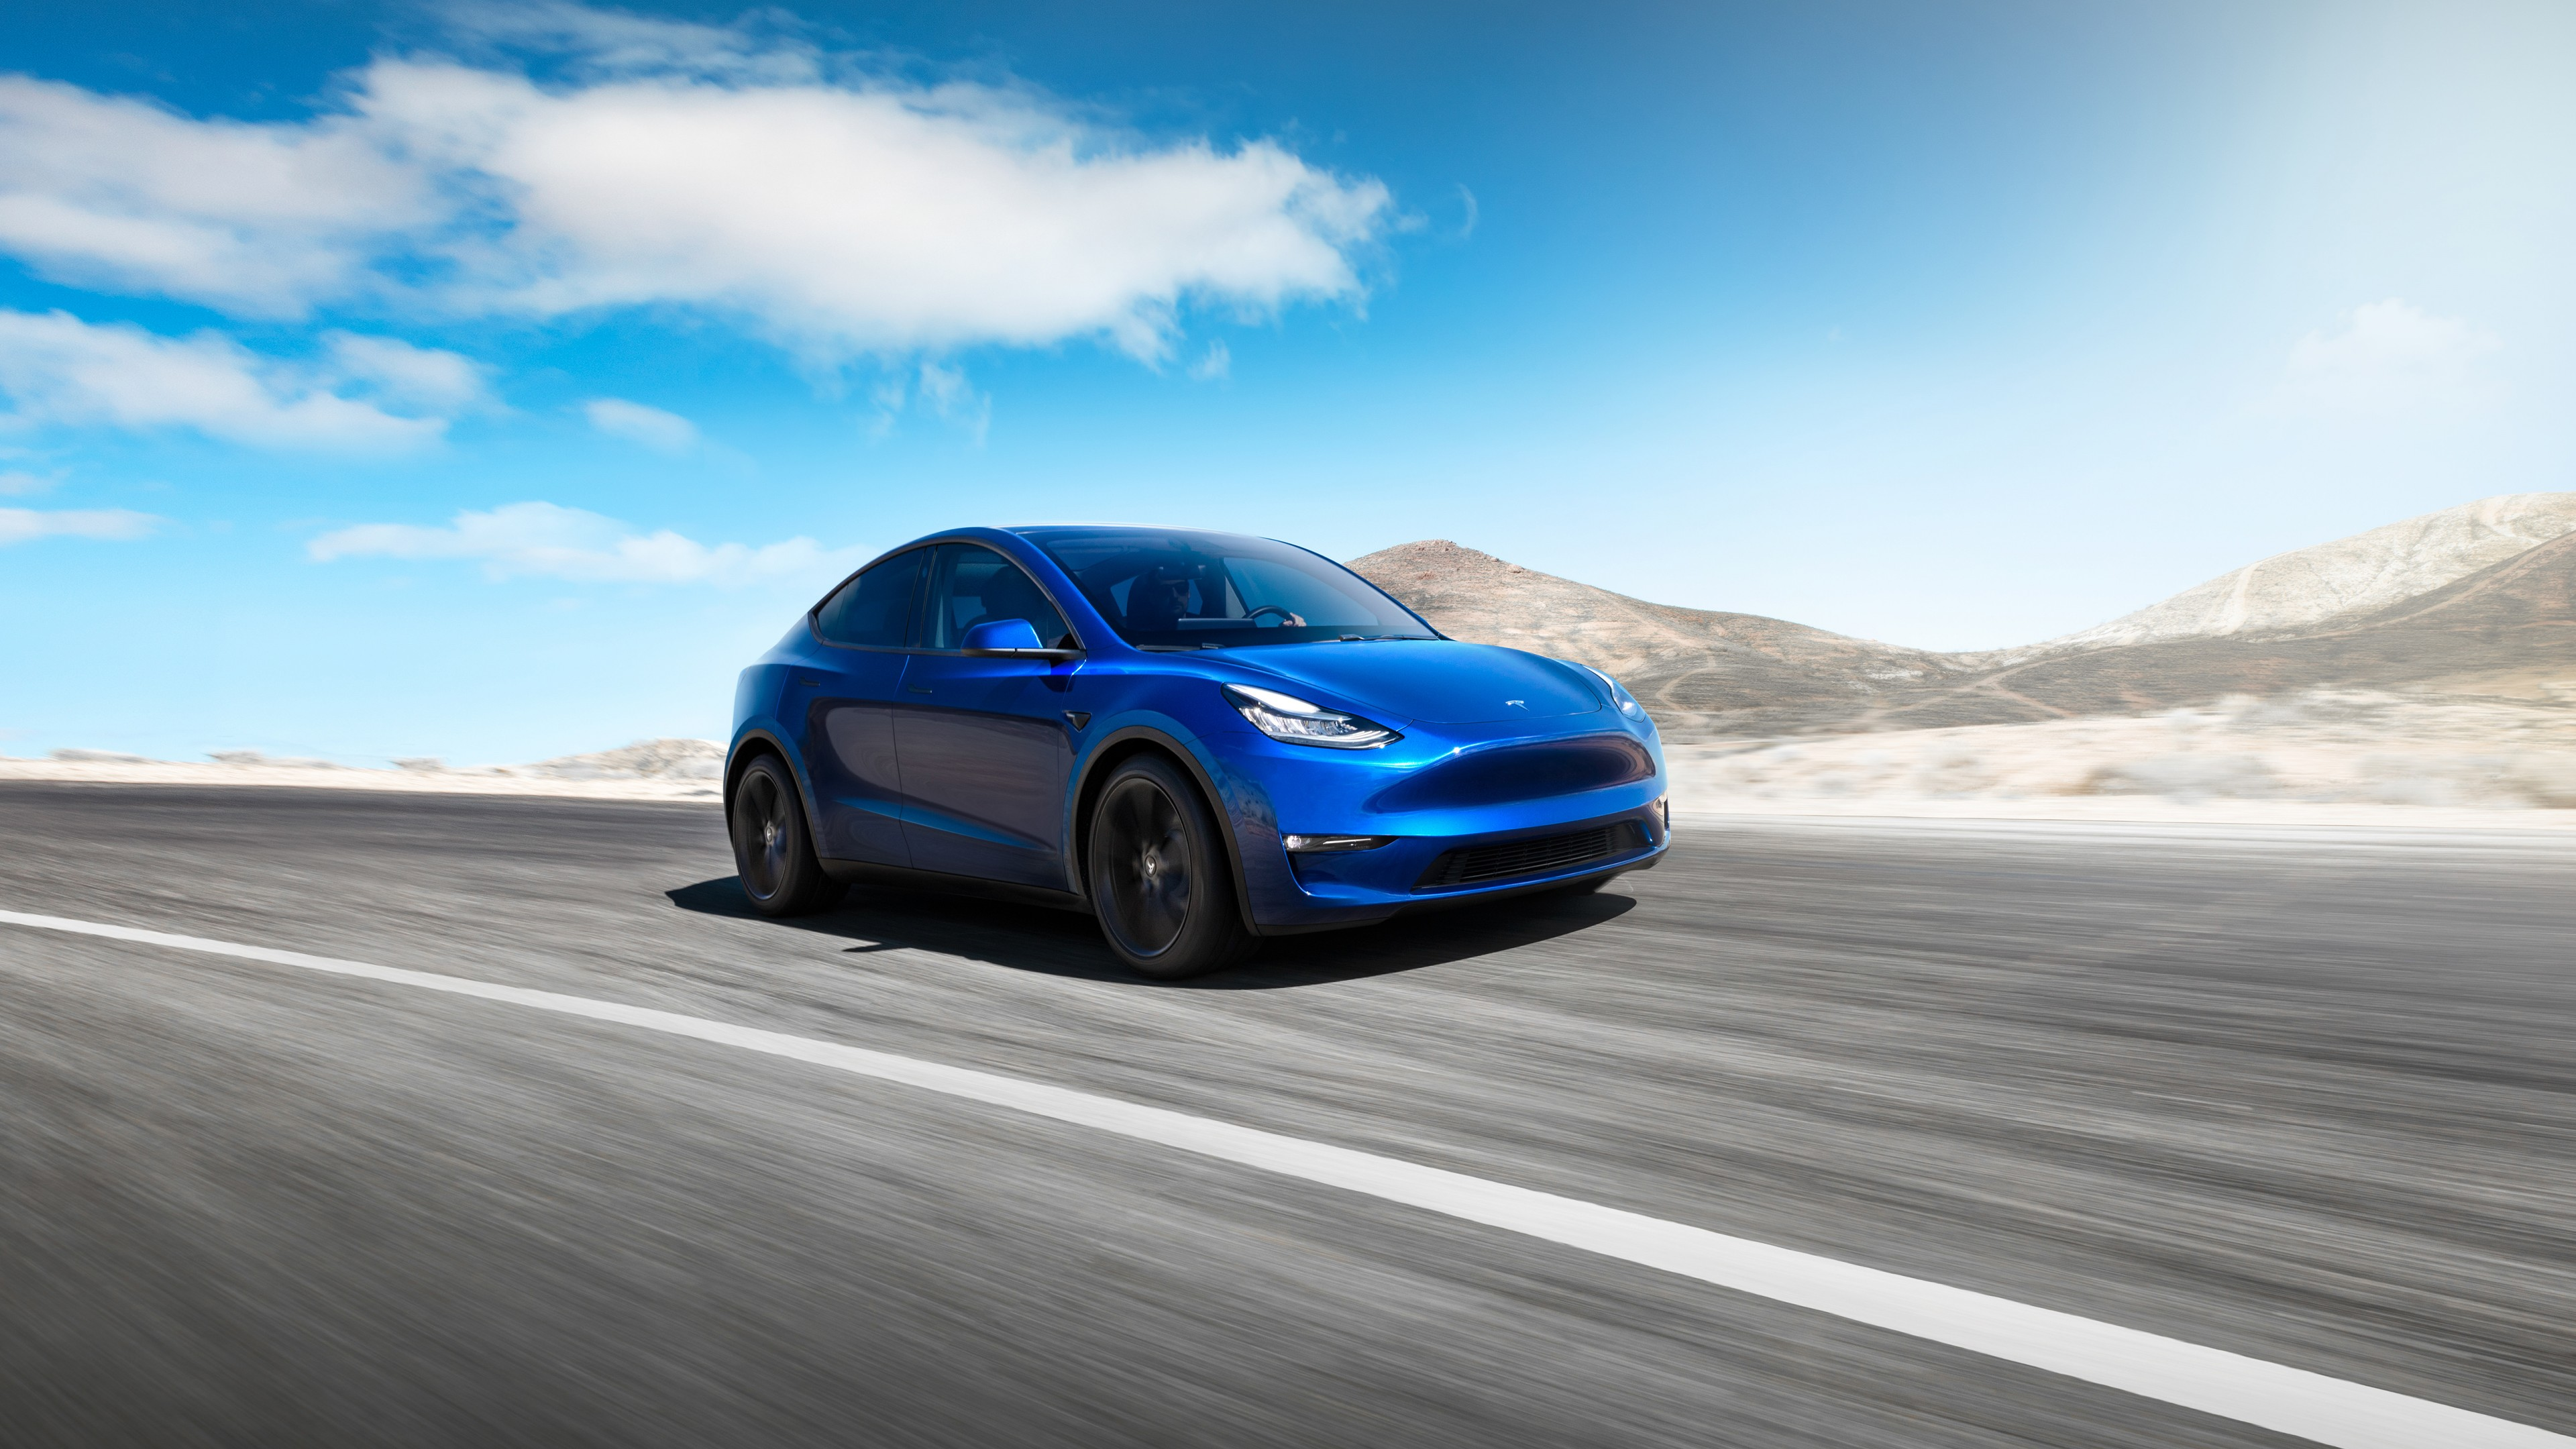 Tesla Model Y 2020 4K Wallpaper | HD Car Wallpapers | ID ...